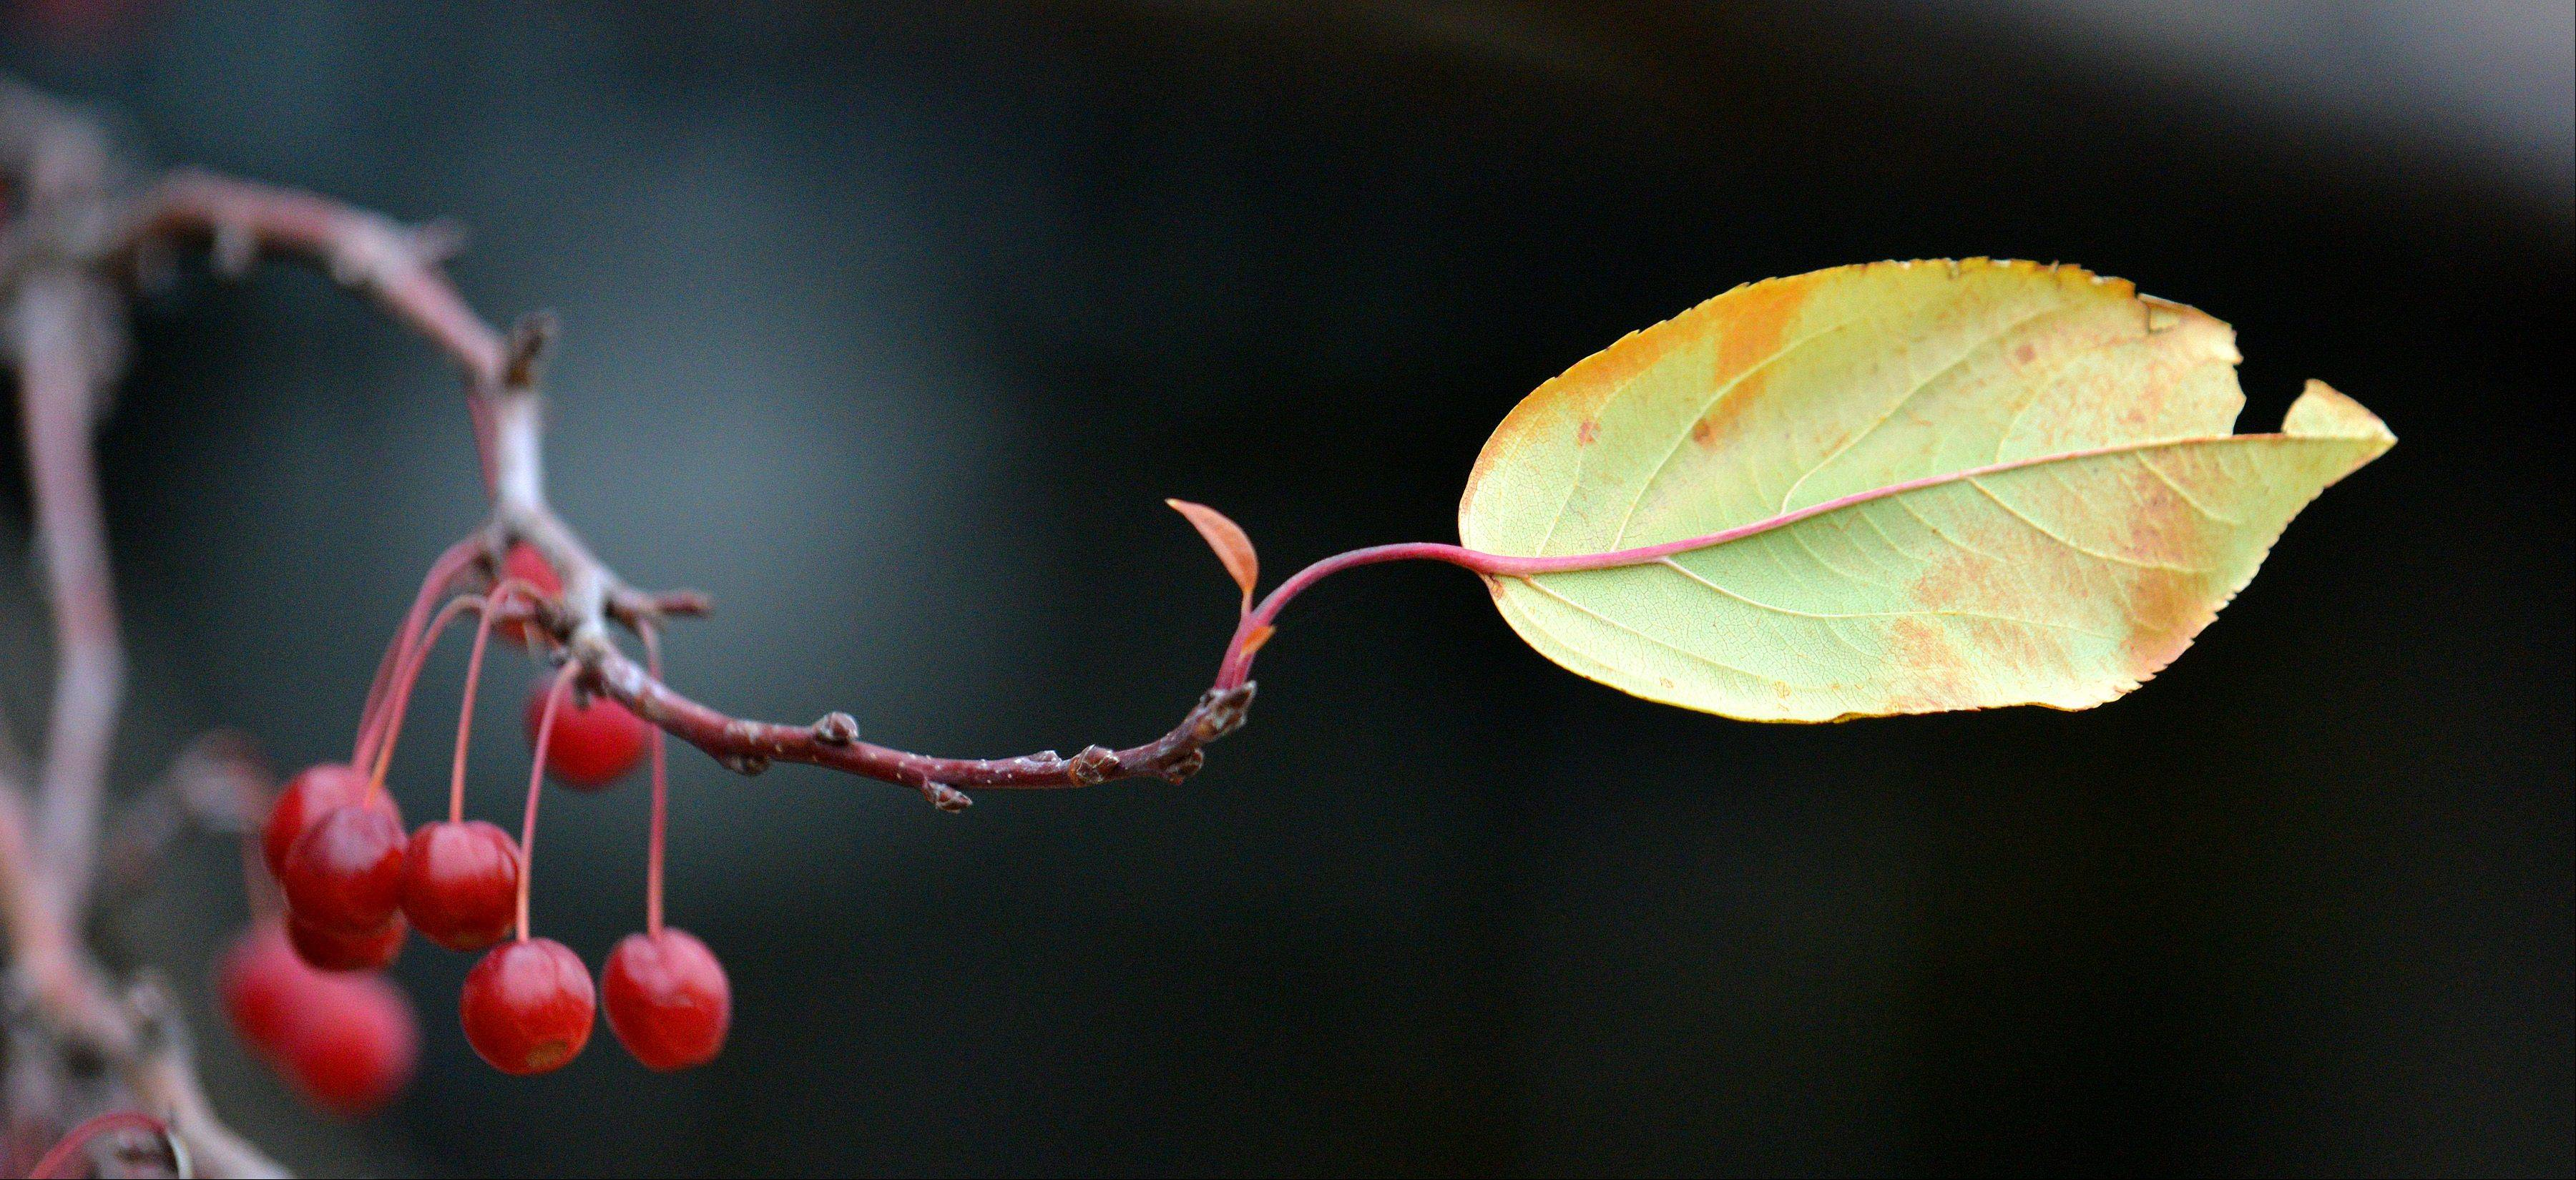 A lone leaf provides an interesting image of the changing seasons.